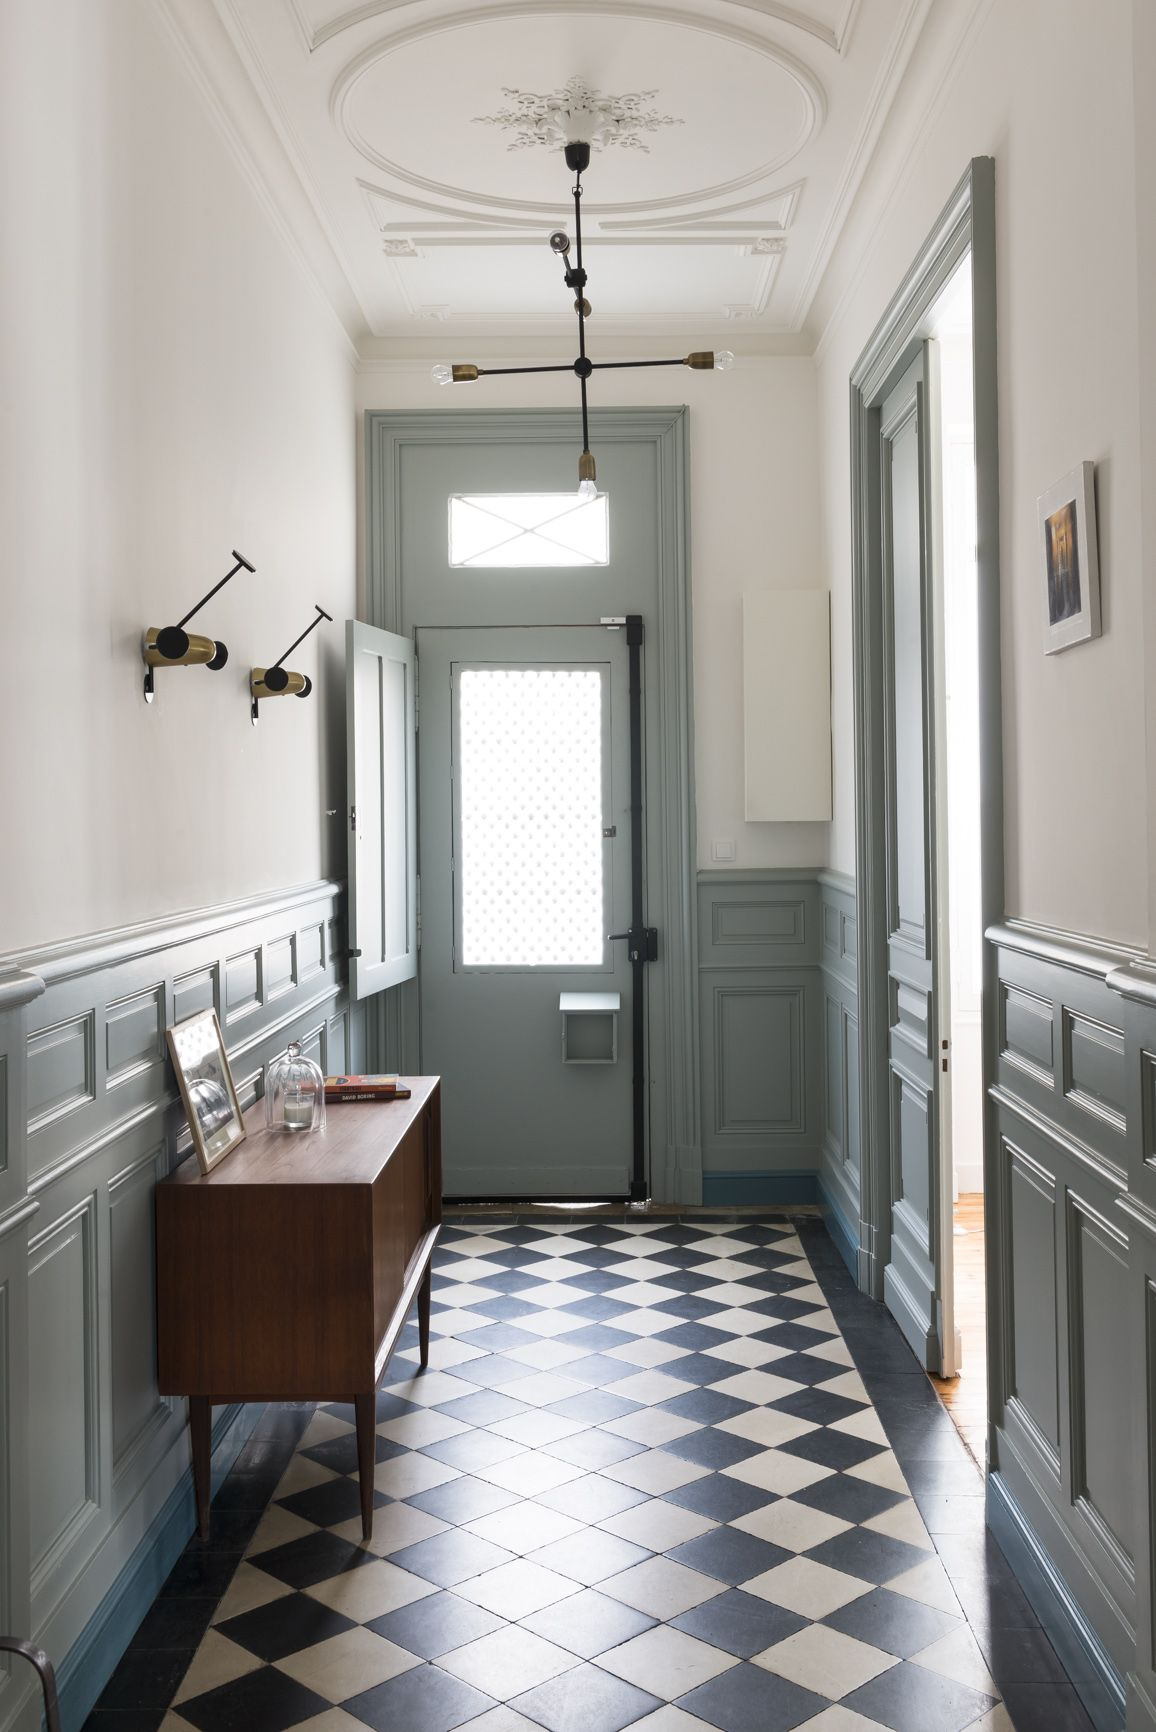 Best 25 maison bourgeoise ideas on pinterest boiseries couloir sol bleu and d cor maison for Couloir appartement